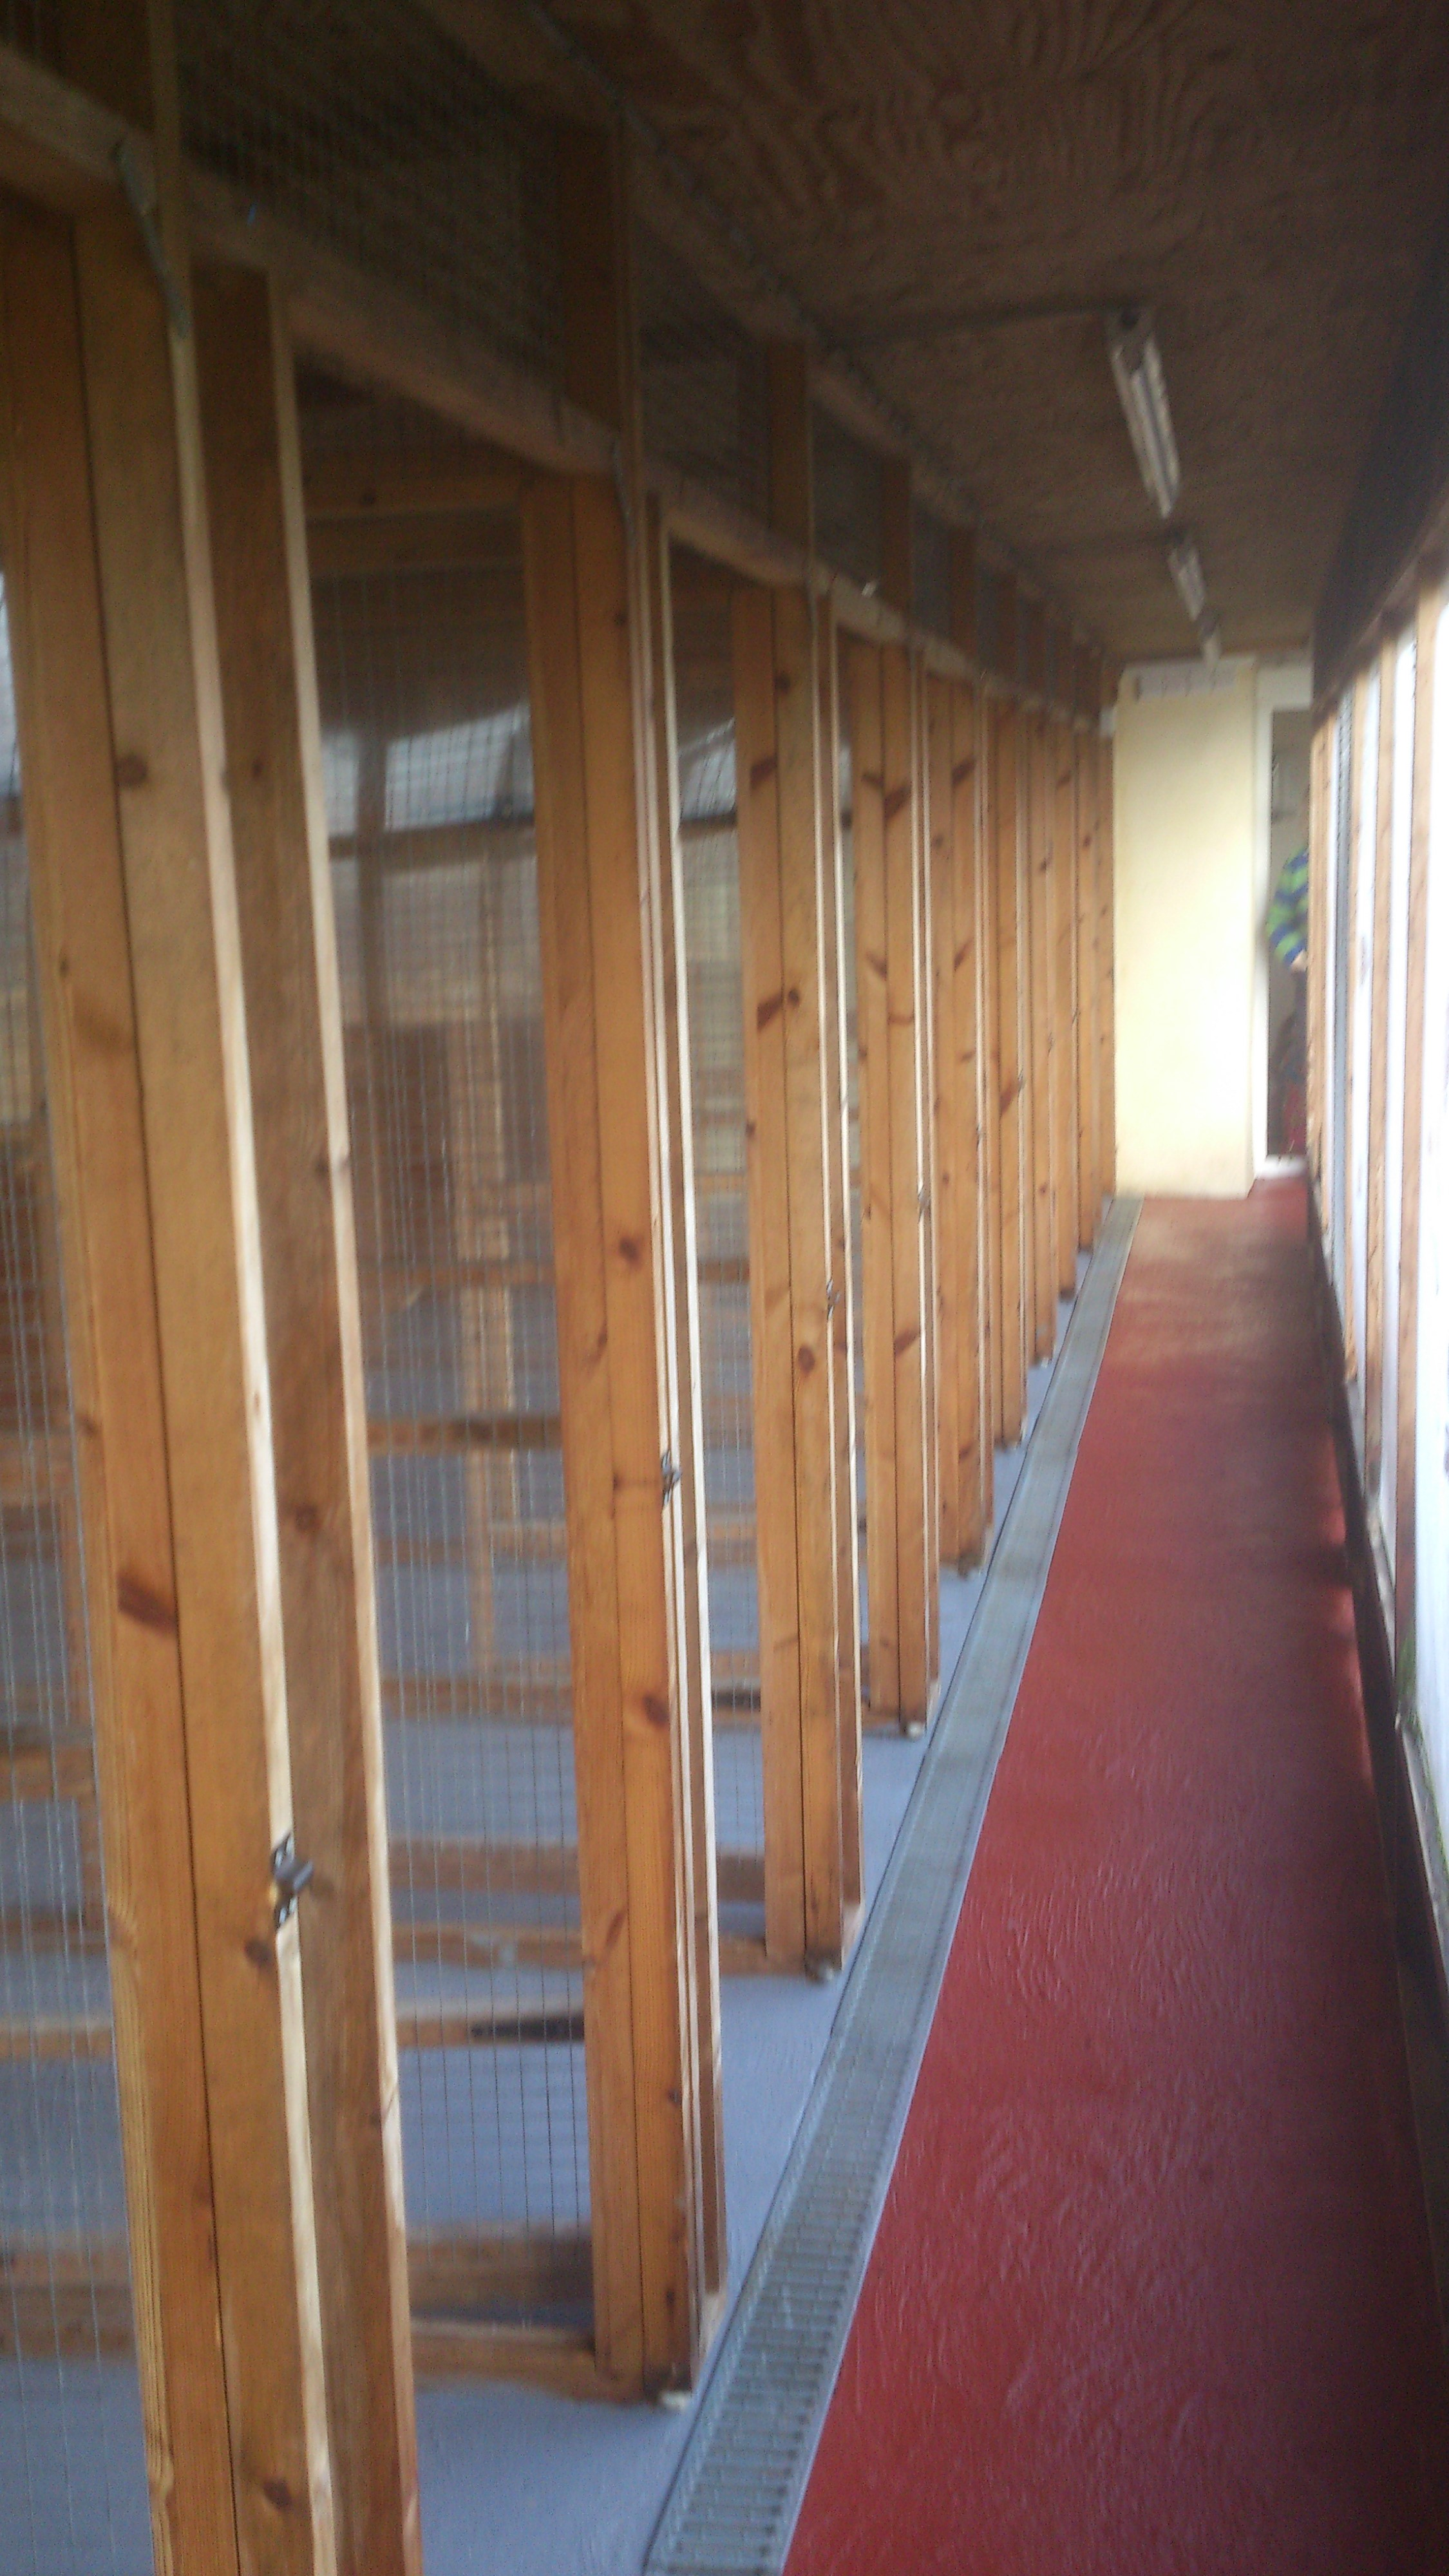 View inside our main cattery